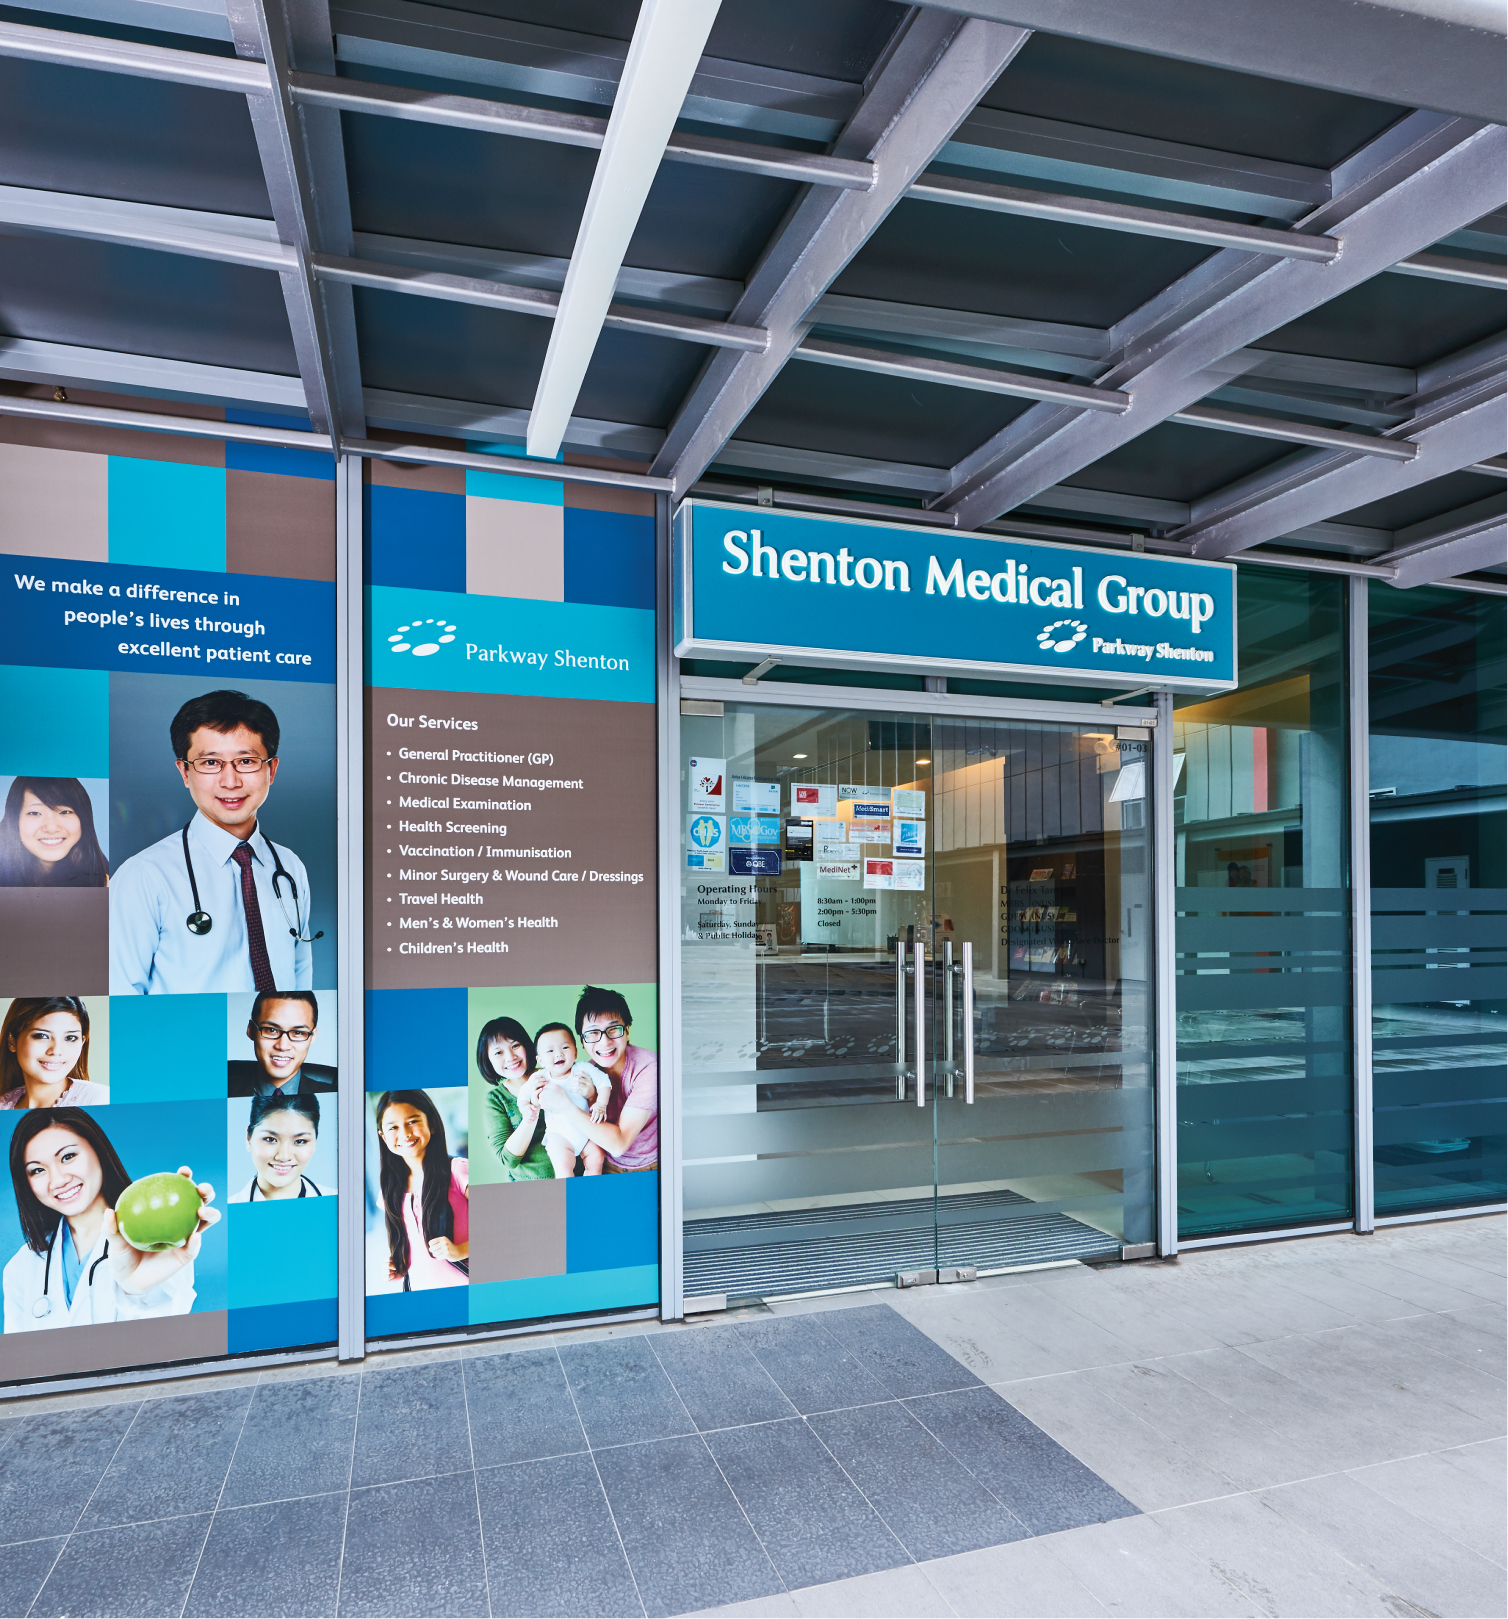 UE Bizhub - Shenton Medical Group